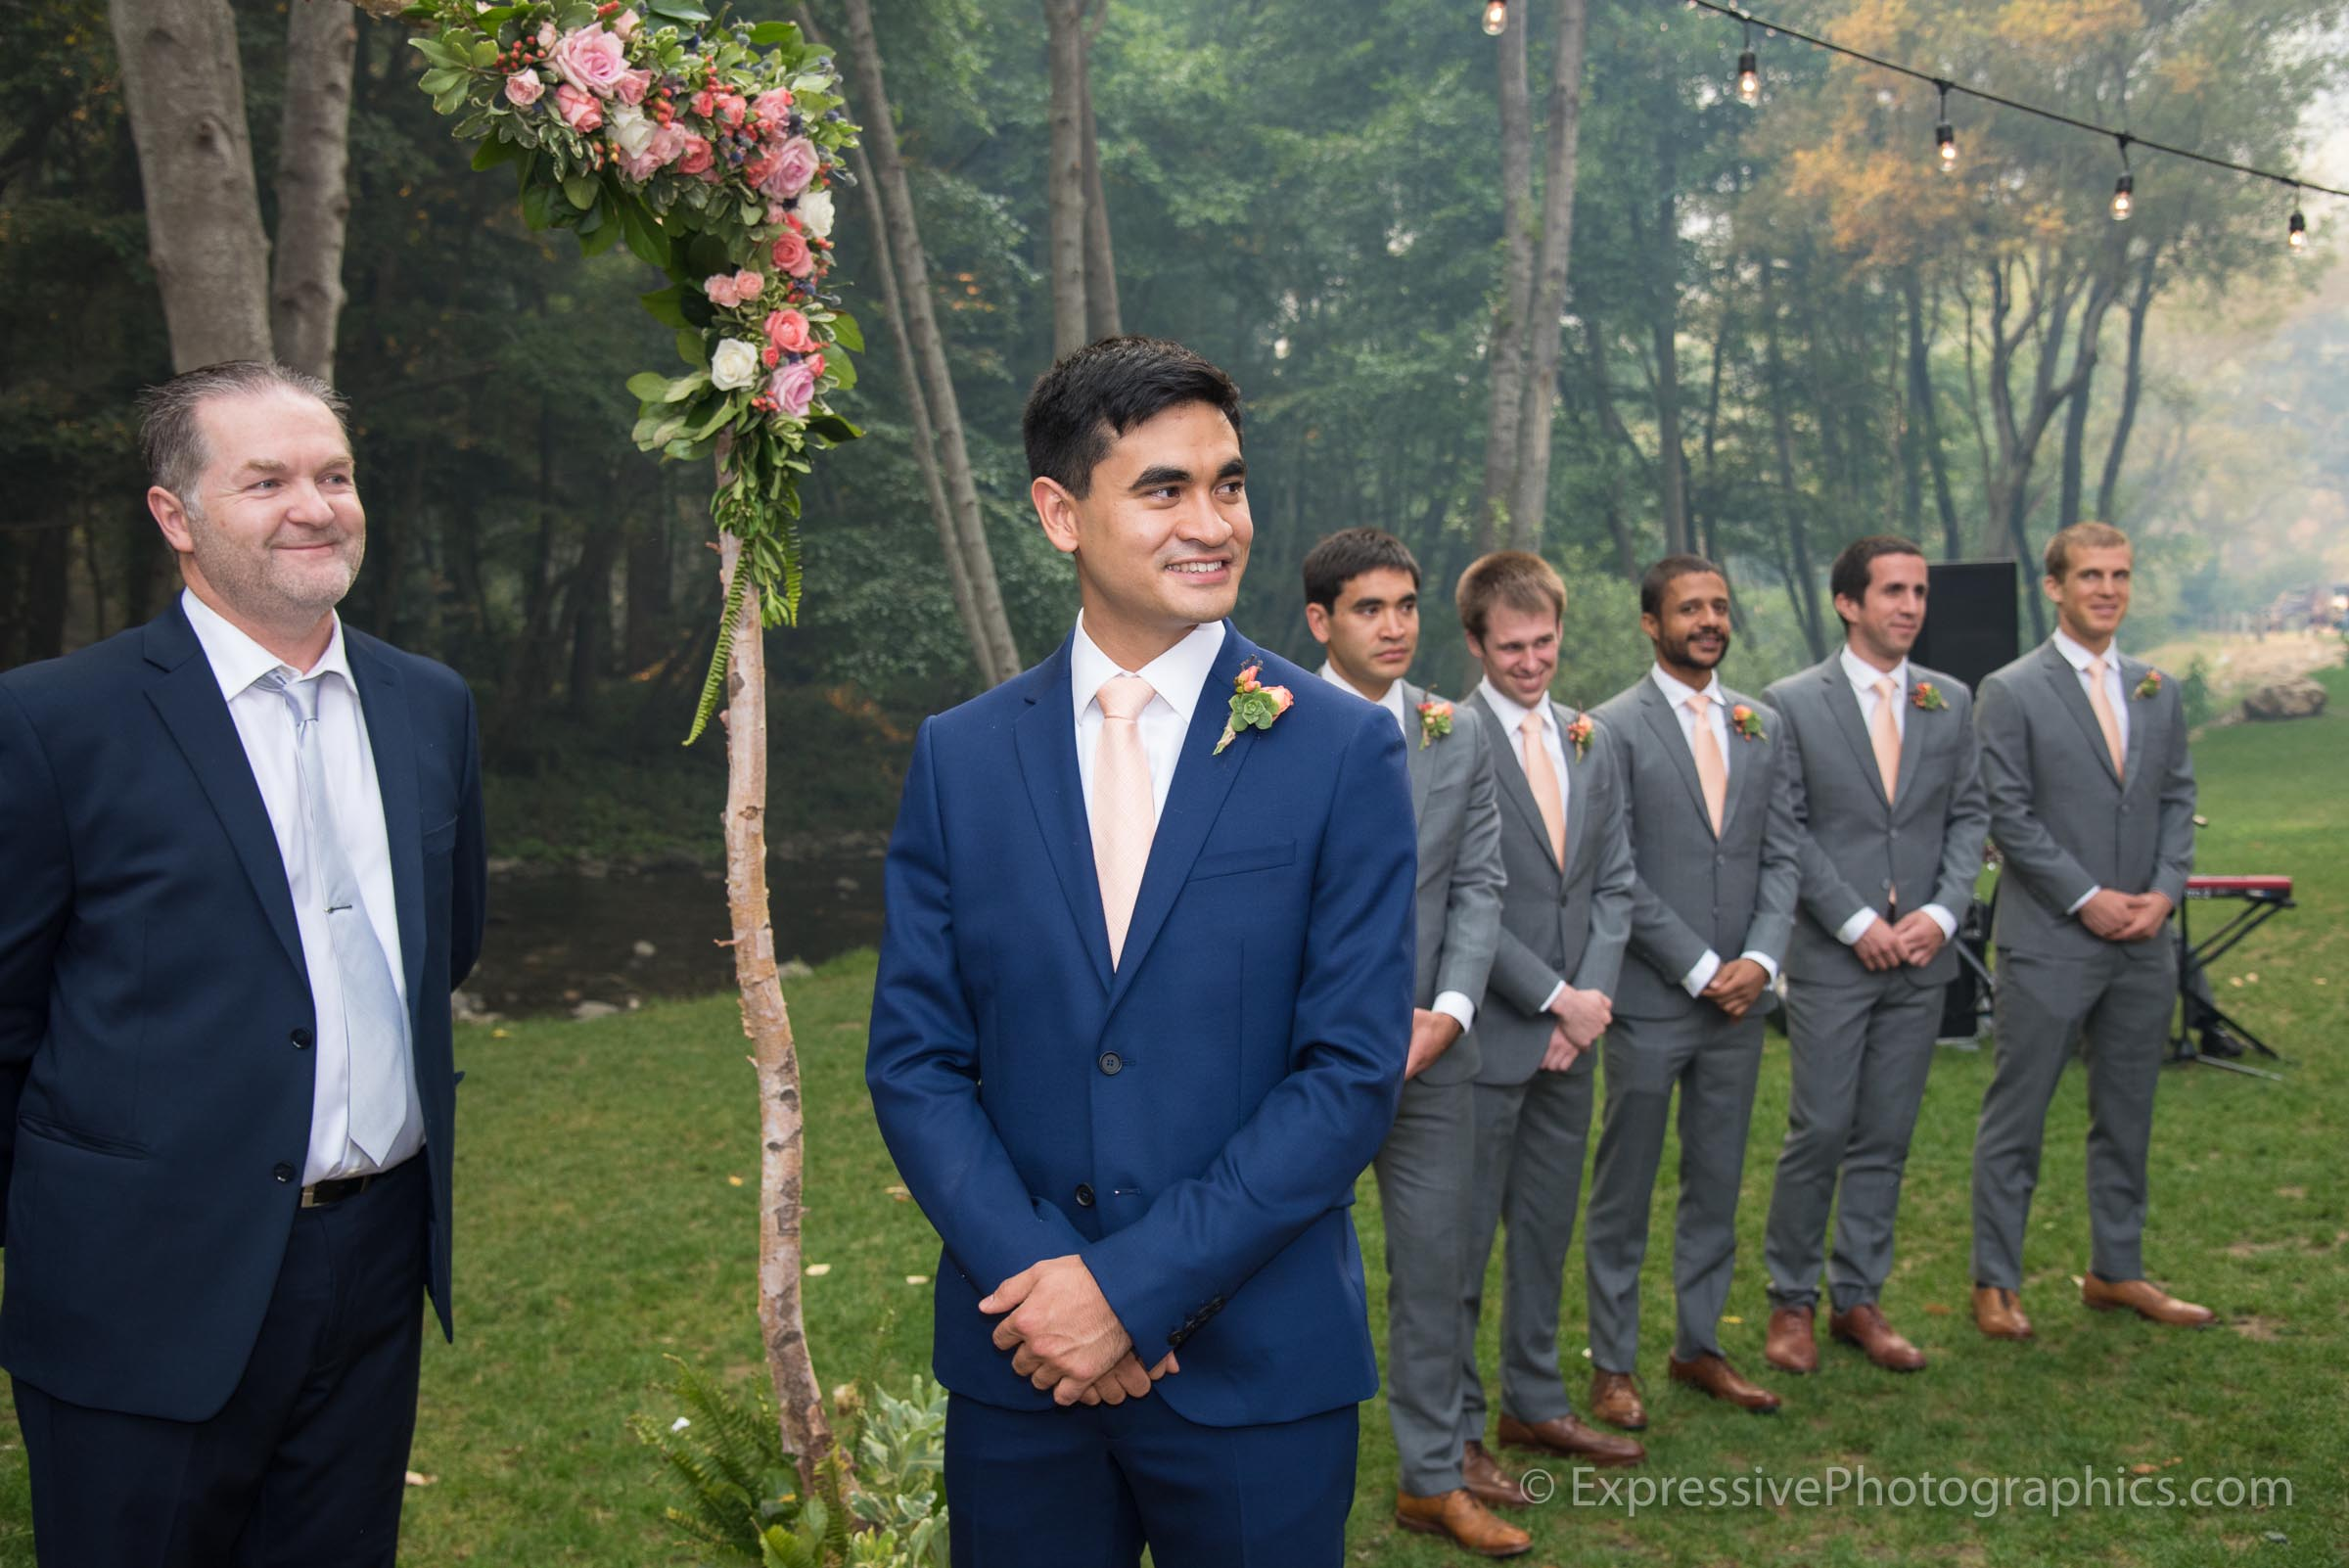 Expressive-Photographics-happy-groom-20160723_0601.jpg